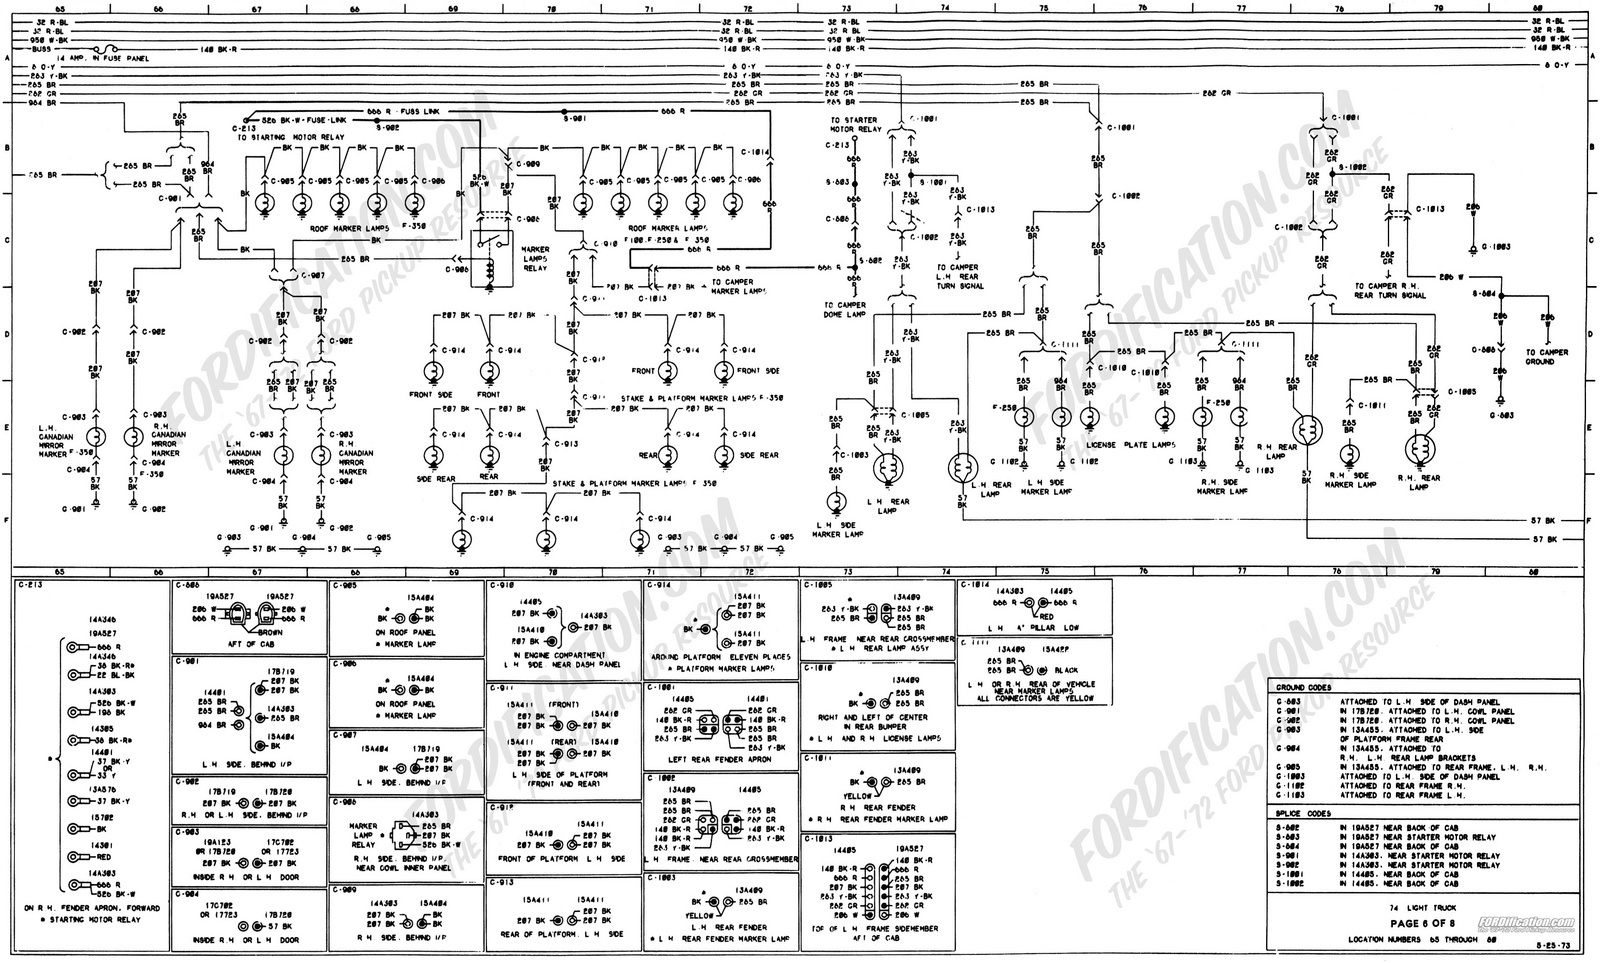 1977 f100 custom wiring diagrams trusted wiring diagram u2022 rh  soulmatestyle co 1961 Ford F100 Wiring Diagram for Color 66 Ford F100  Wiring Diagram